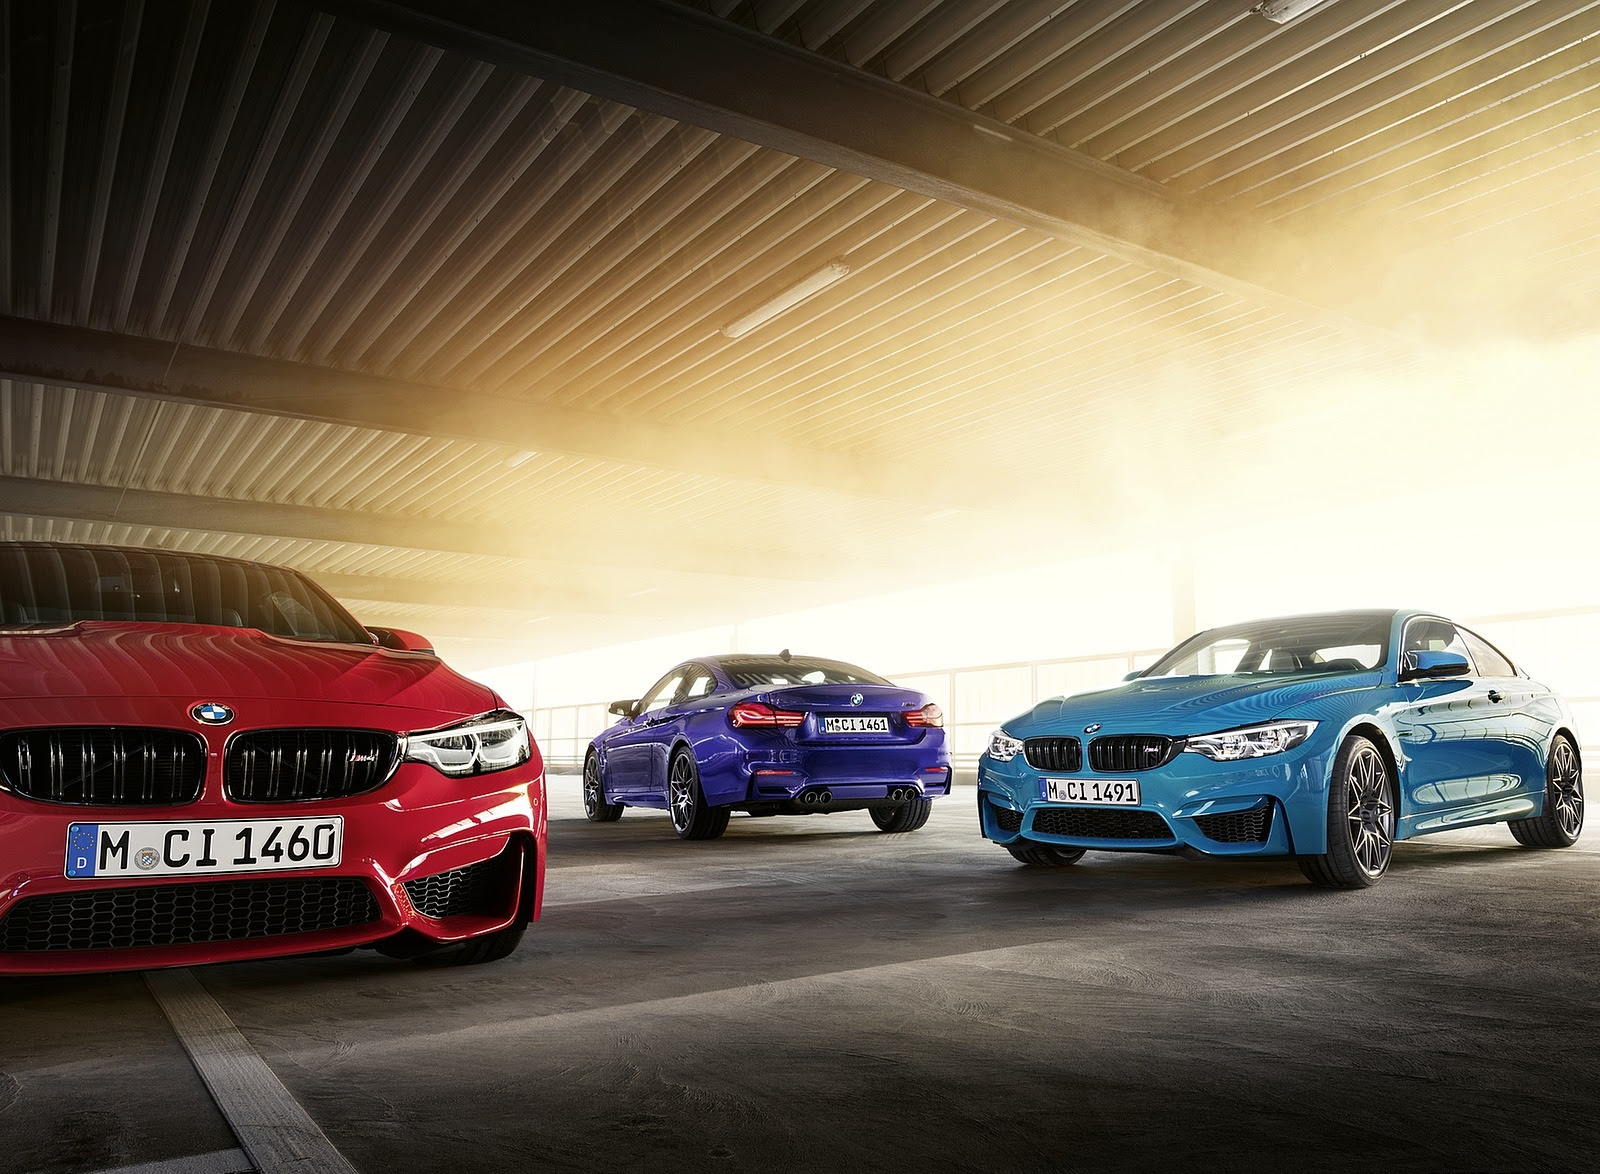 2020 Bmw M4 Edition M Heritage Wallpapers 16 Hd Images Newcarcars